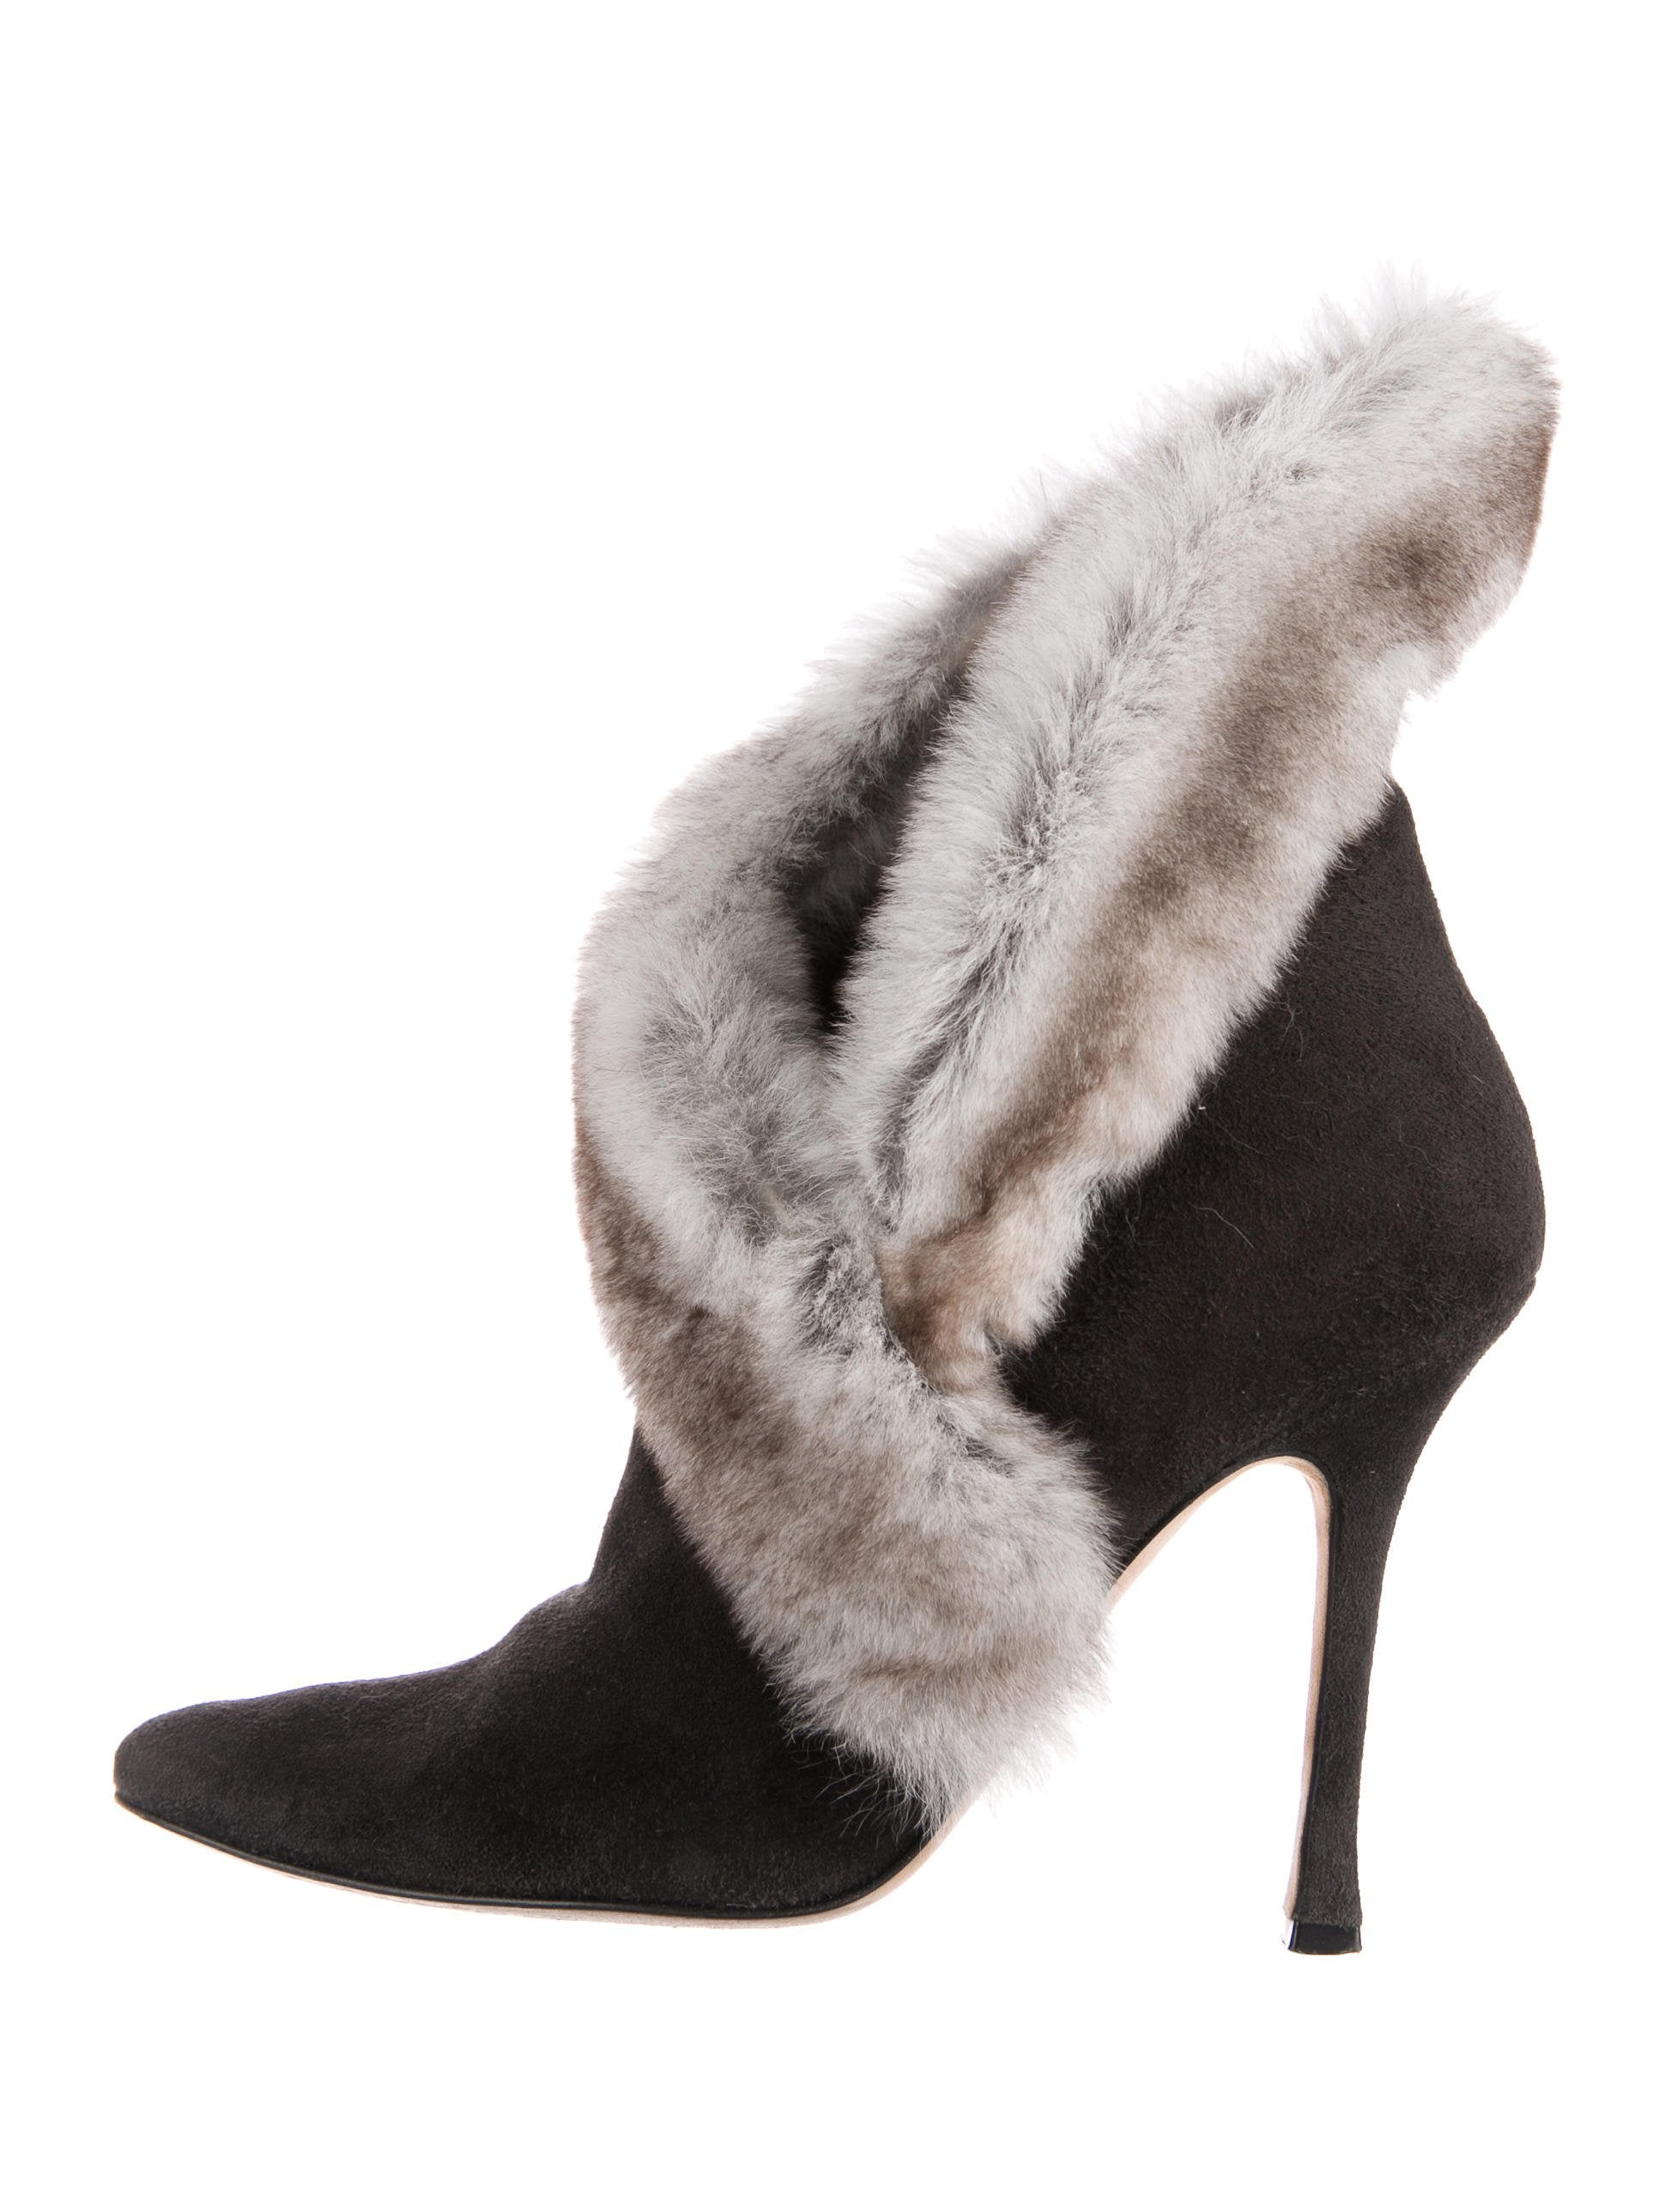 Manolo Blahnik Fur-Trimmed Suede Booties w/ Tags extremely lowest price cheap online discount clearance czAmrhj